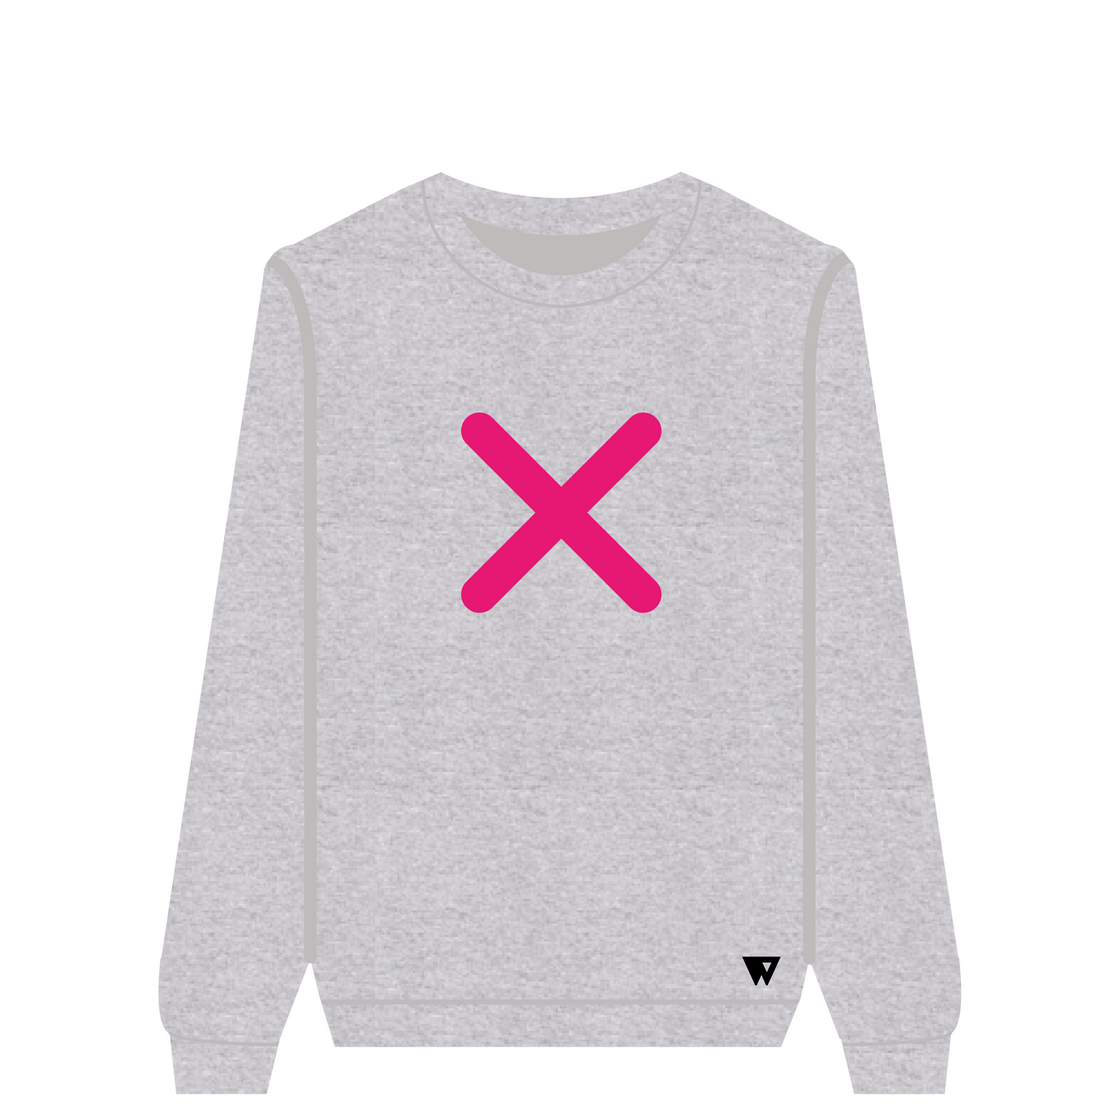 Sweatshirt Pink Cross | Wuzzee